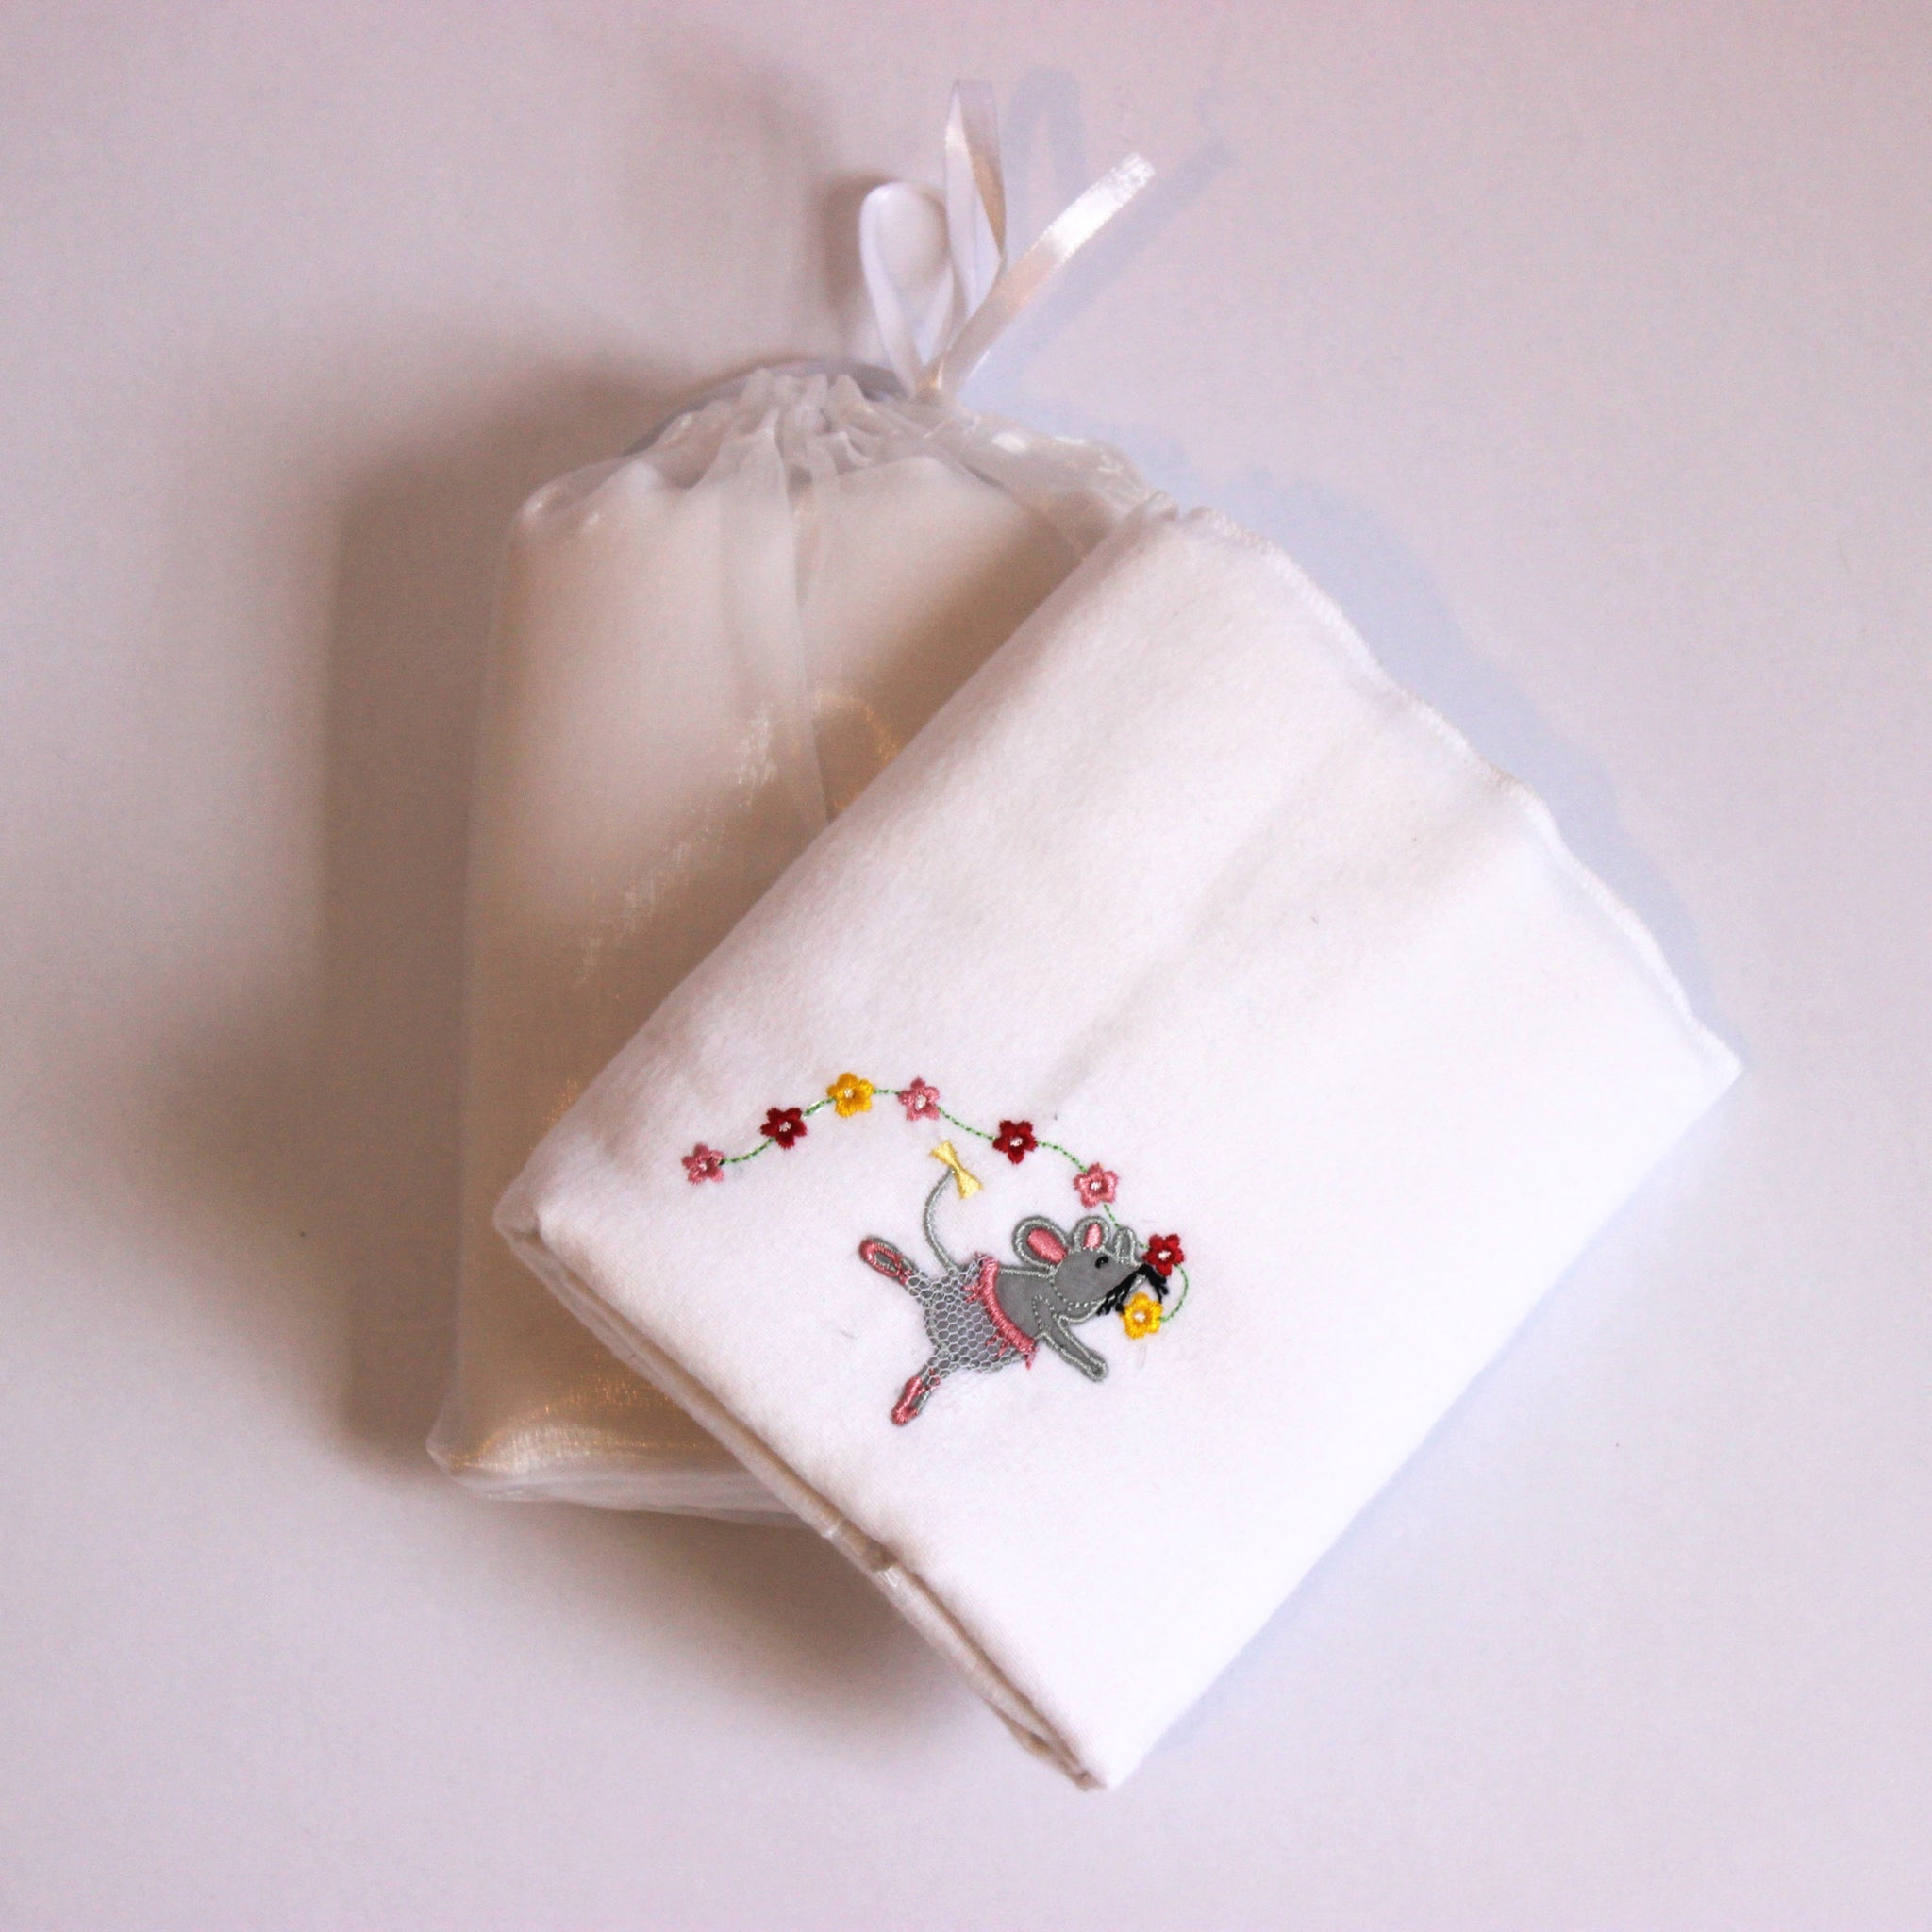 100% Cotton Receiving Blanket - White Ballerina Mice